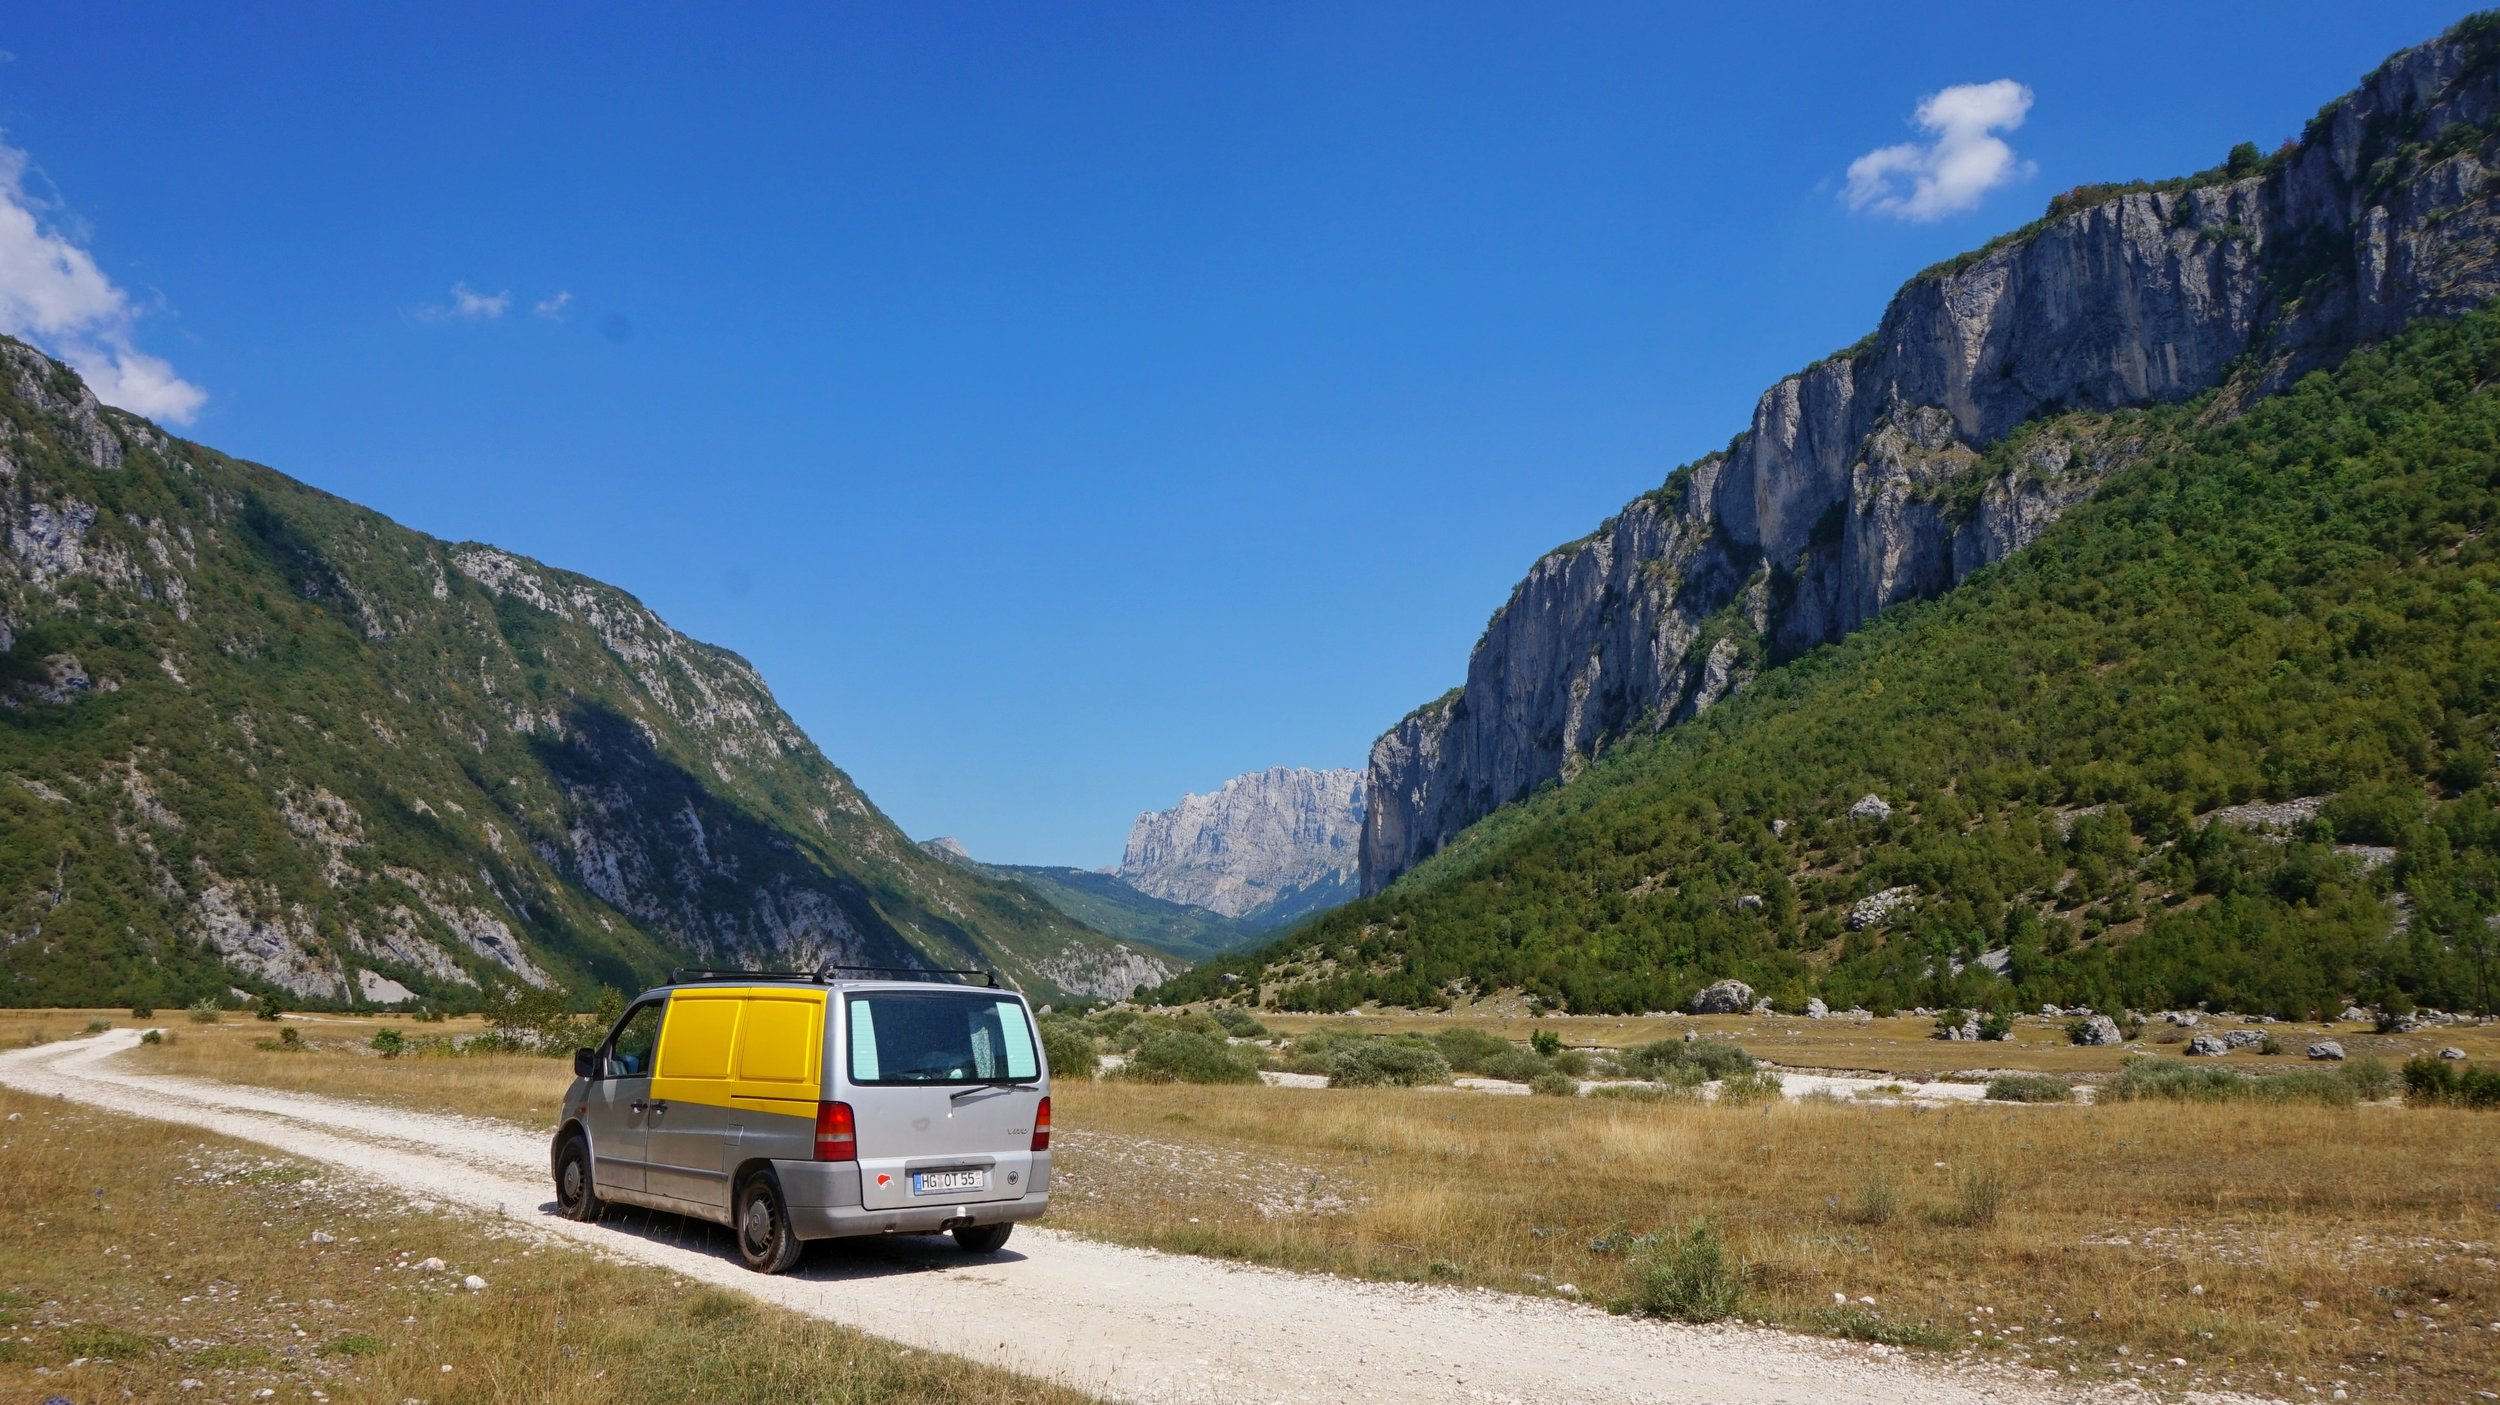 One of the great valleys near the Durmitor National Park. Definitely a must-see place during your trip to Montenegro.